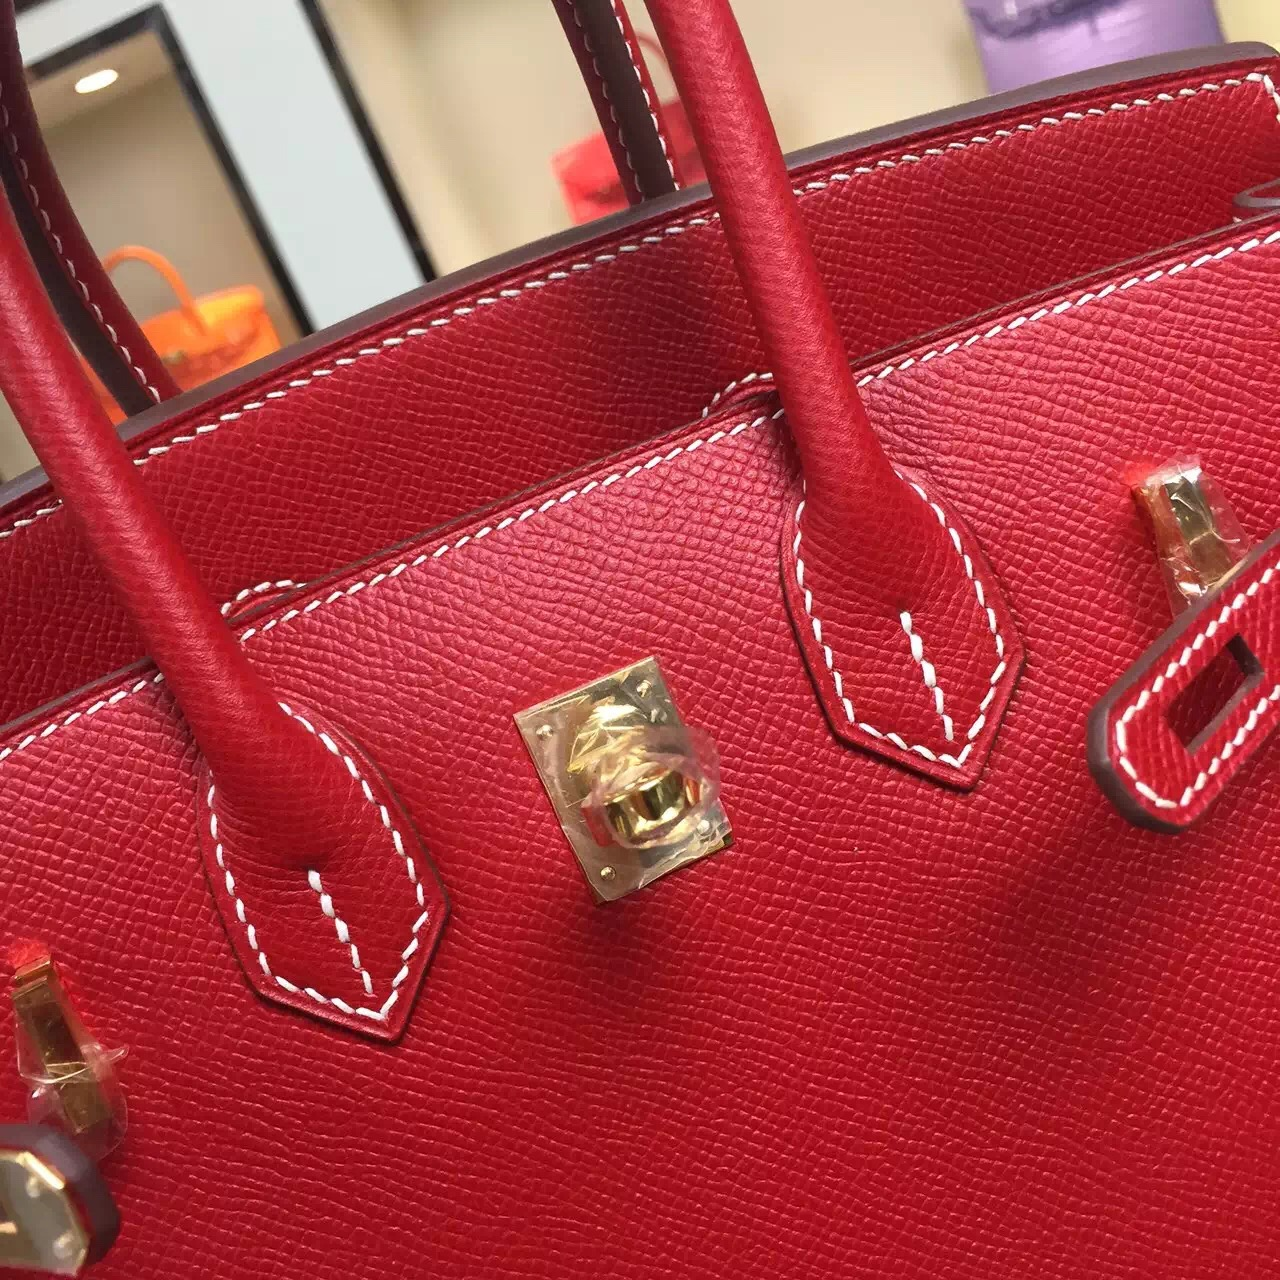 25CM Hermes Birkin Bag Epsom Calfskin Leather Q5 Chinese Red Gold/Silver Hardware